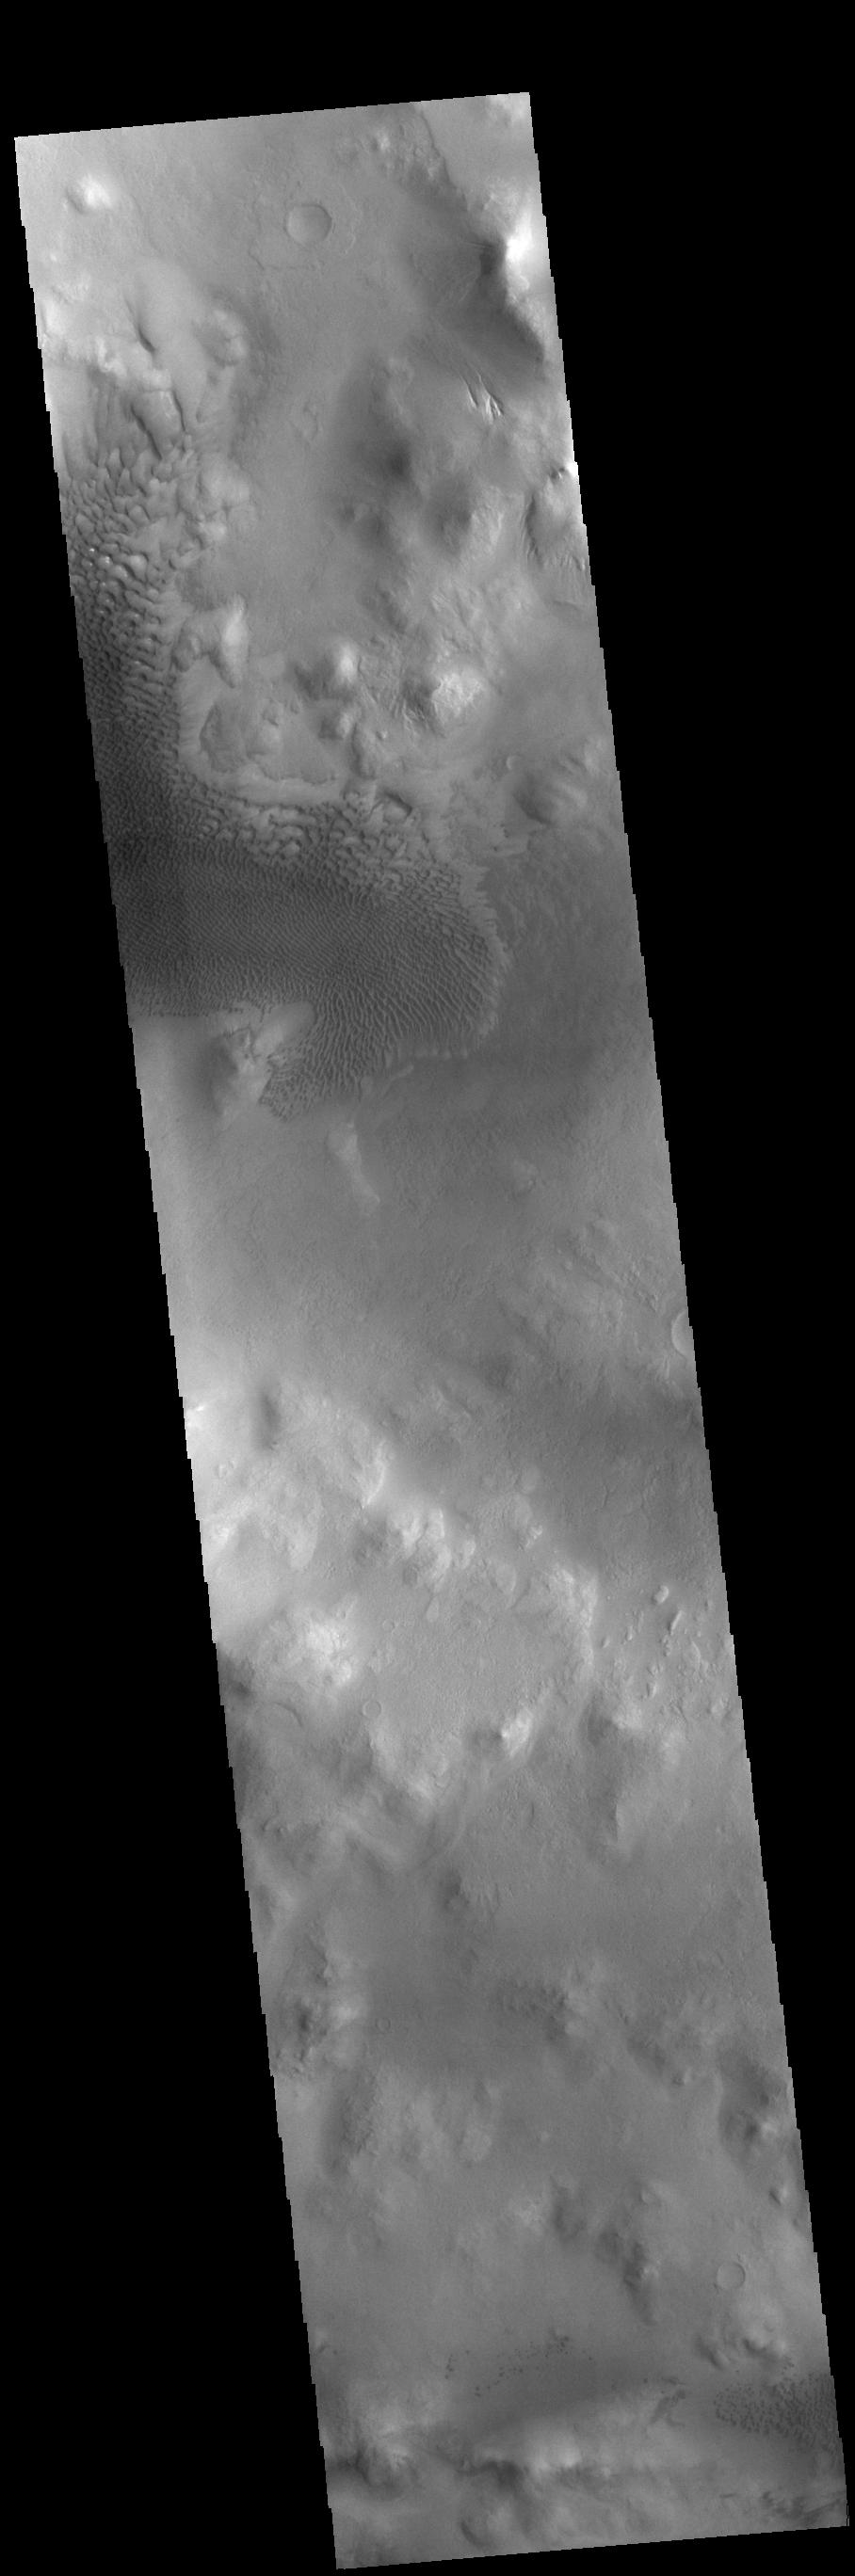 This image from NASAs Mars Odyssey shows part of Lyot Crater, including a large field of sand dunes on the crater floor.